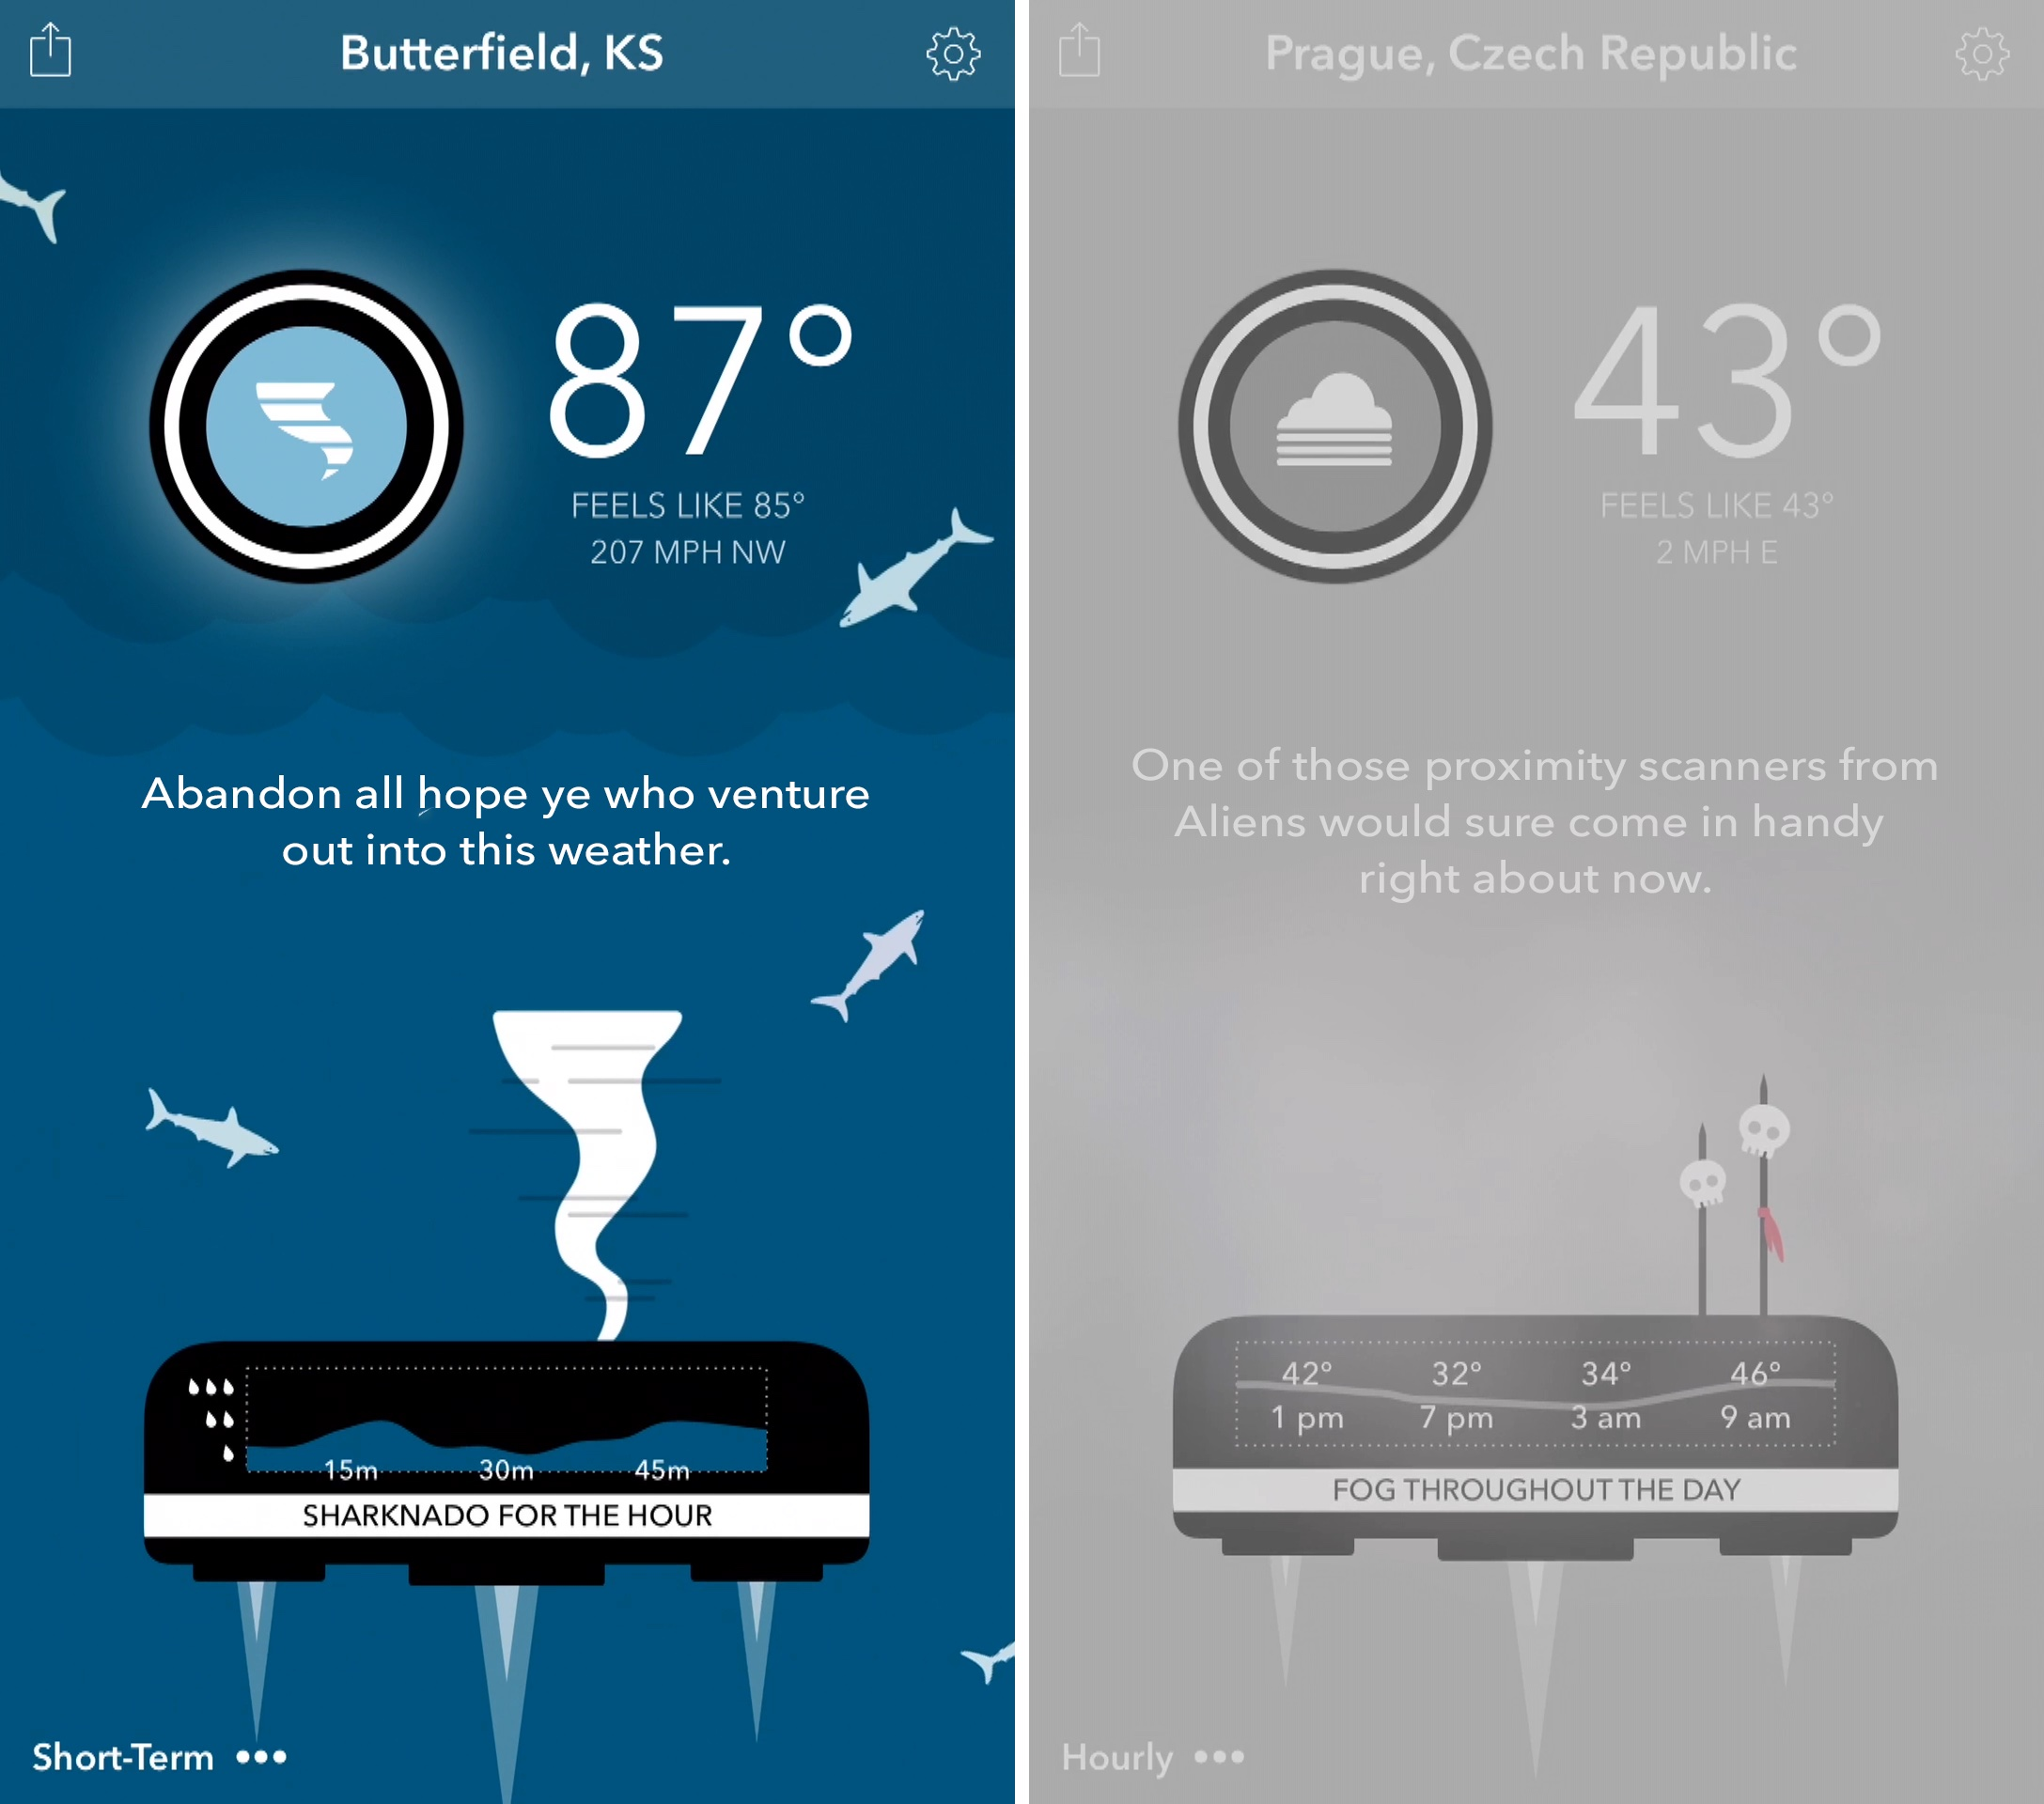 Carrot Weather 1.0 for iOS iPhone screenshot 003